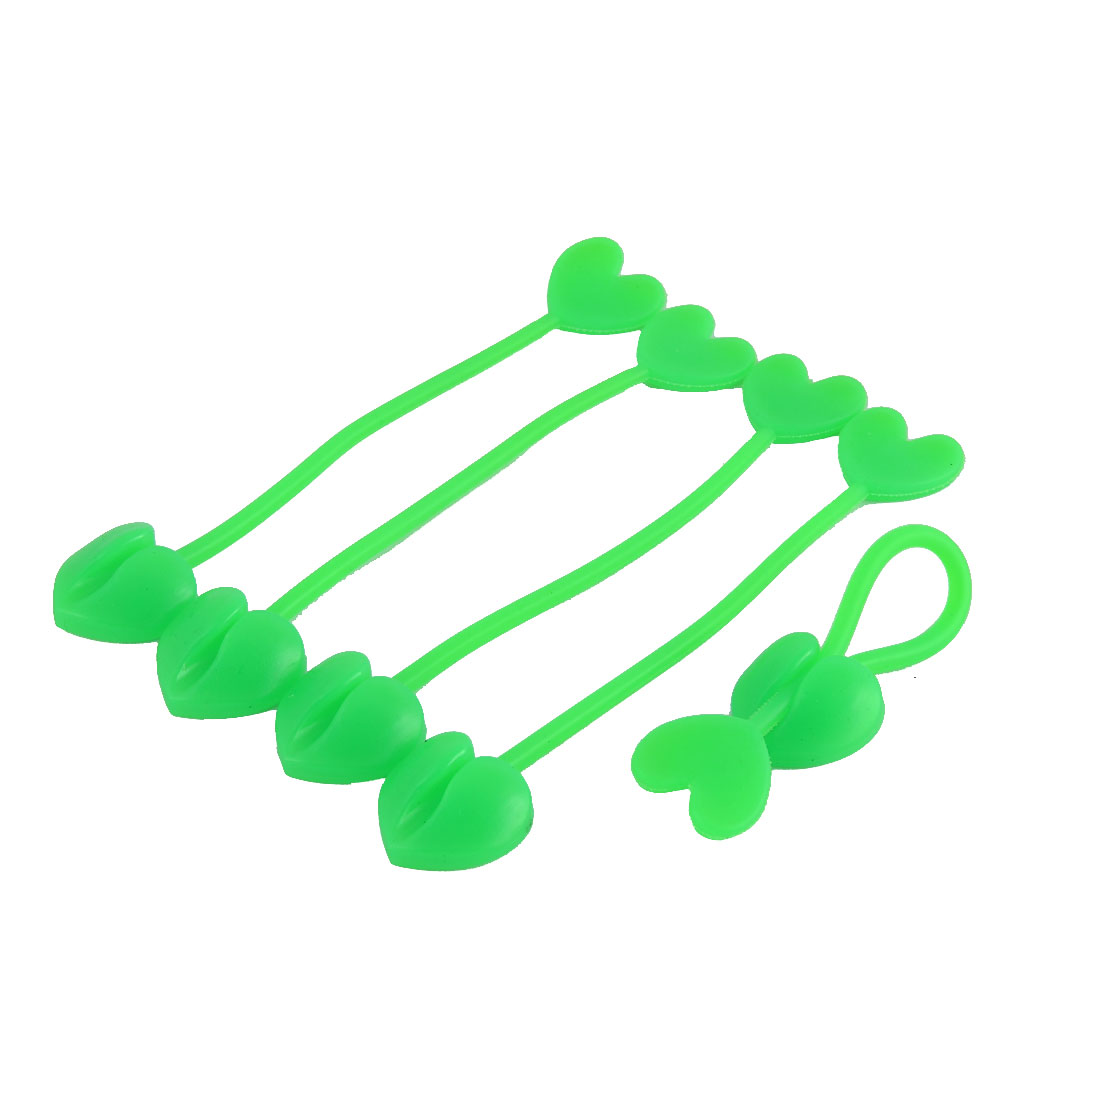 Household Silicone Heart Design Tip Flexible Cable Tie Organizer Wrap Green 5pcs